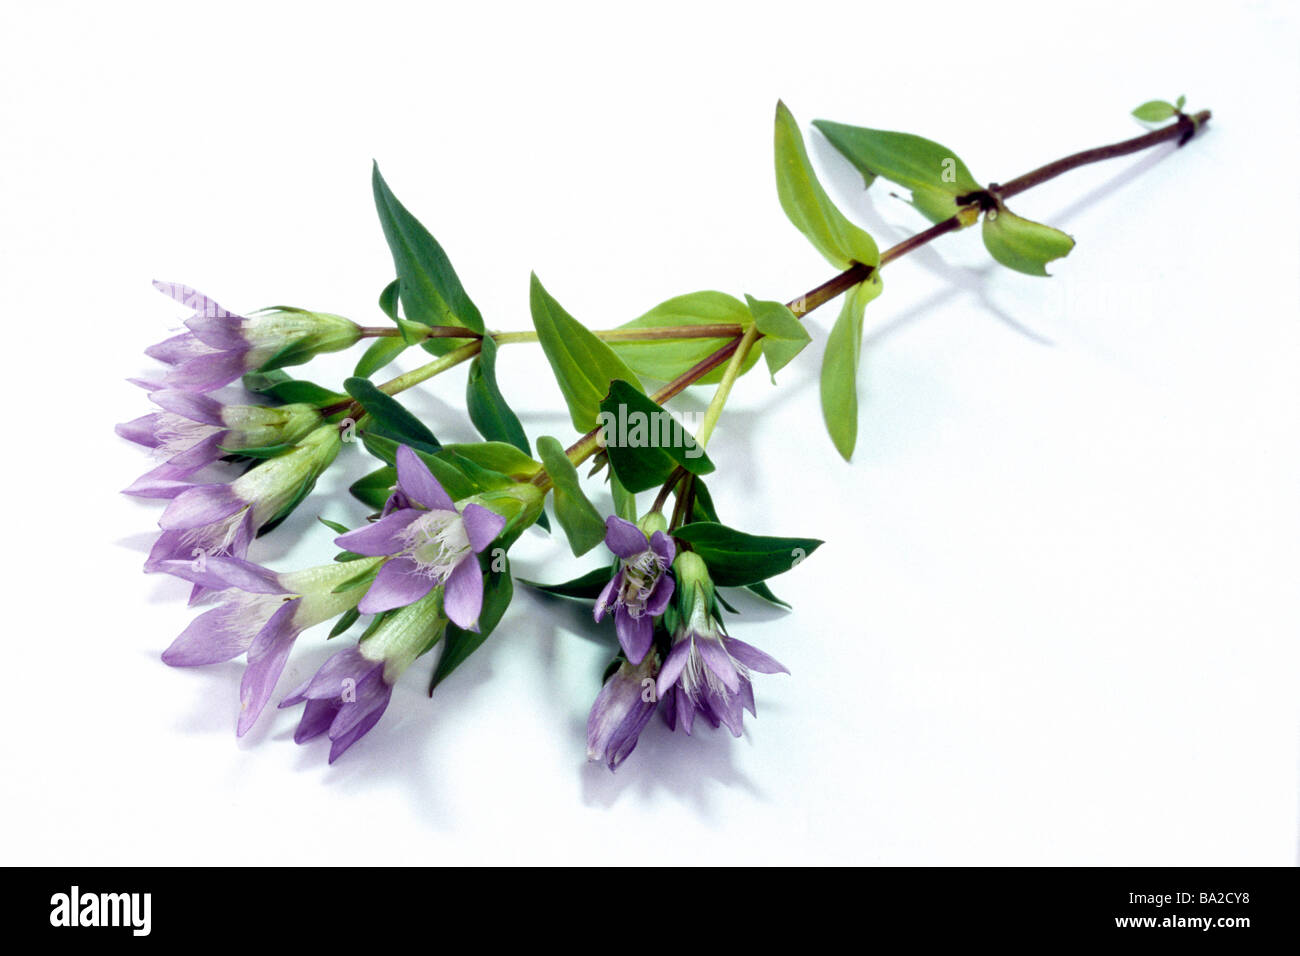 Autumn Dwarf Gentian, Felwort (Gentiana amarella), twig with flowers and leaves. - Stock Image